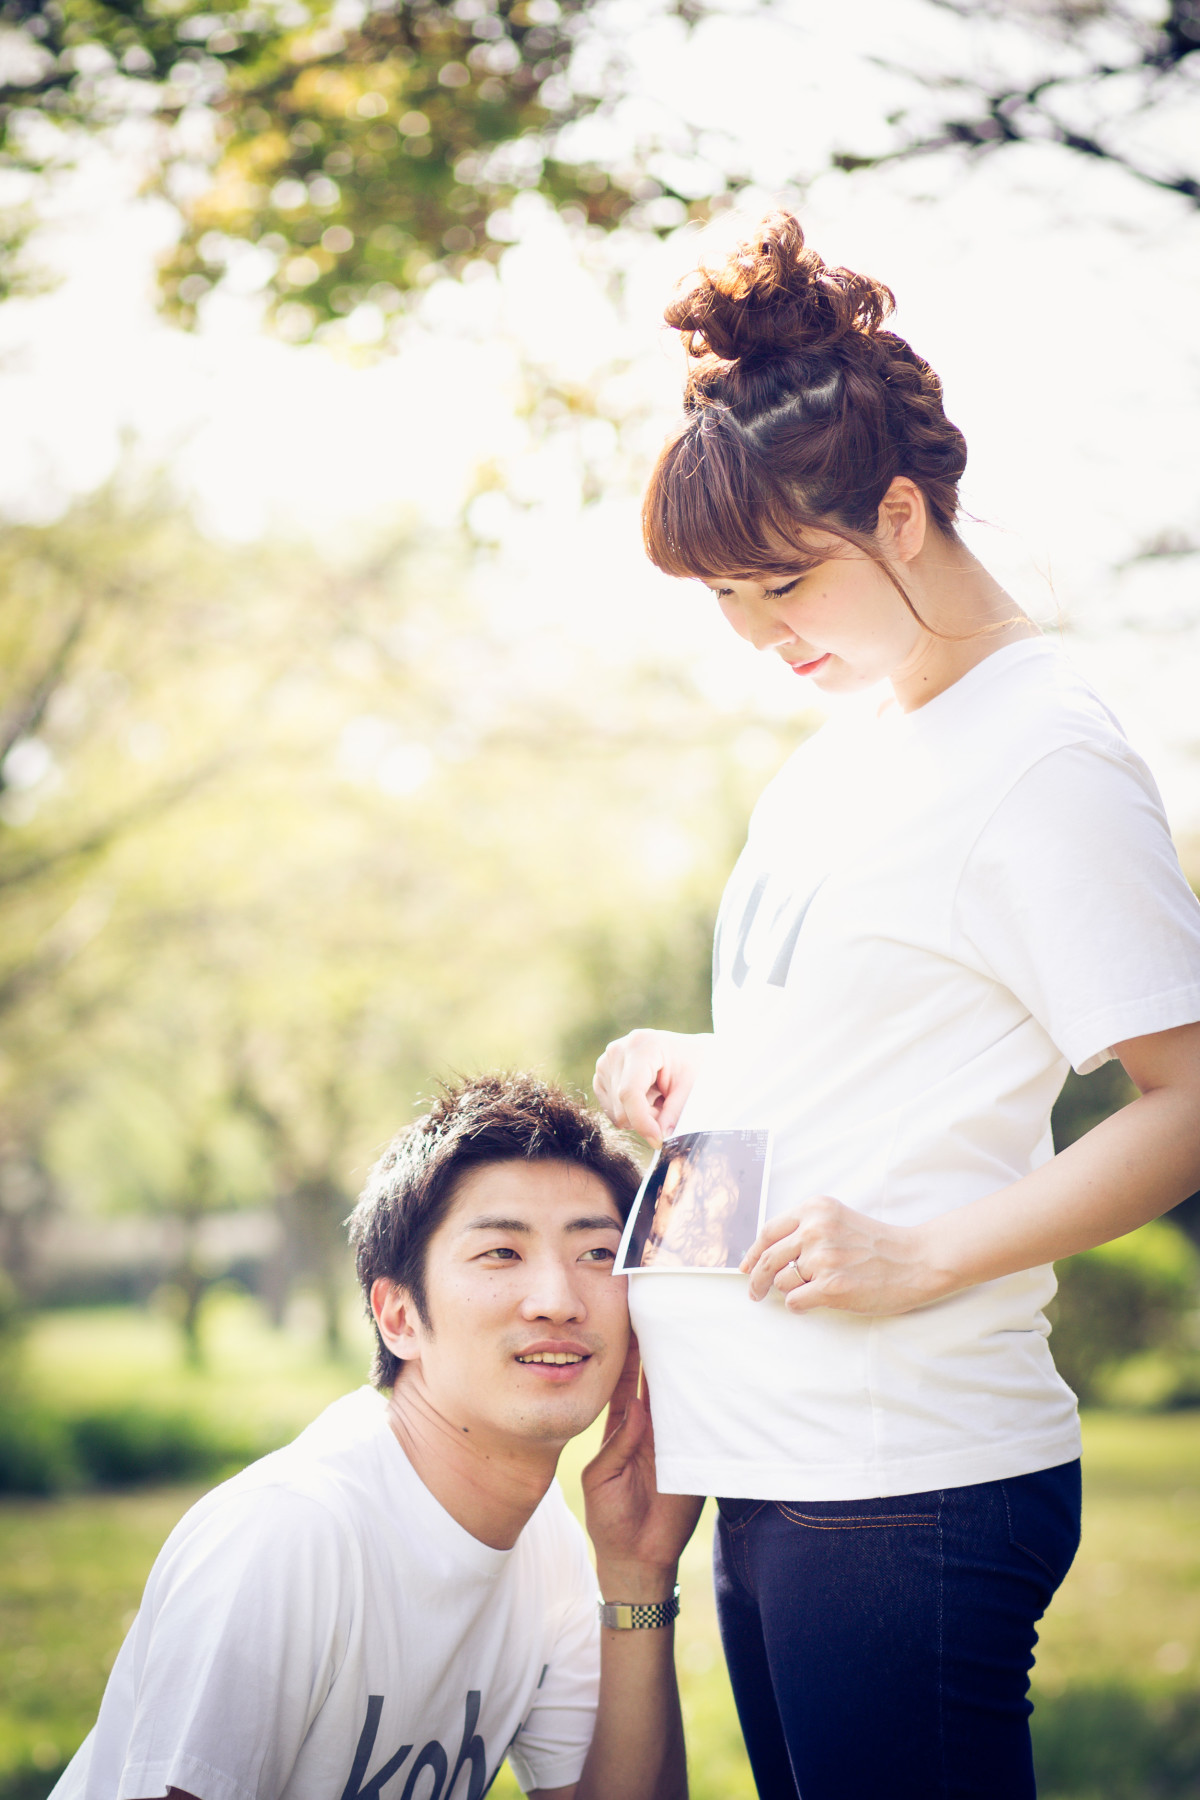 Couple maternity photo shoot in Japan — Photo by Takano Kazuki